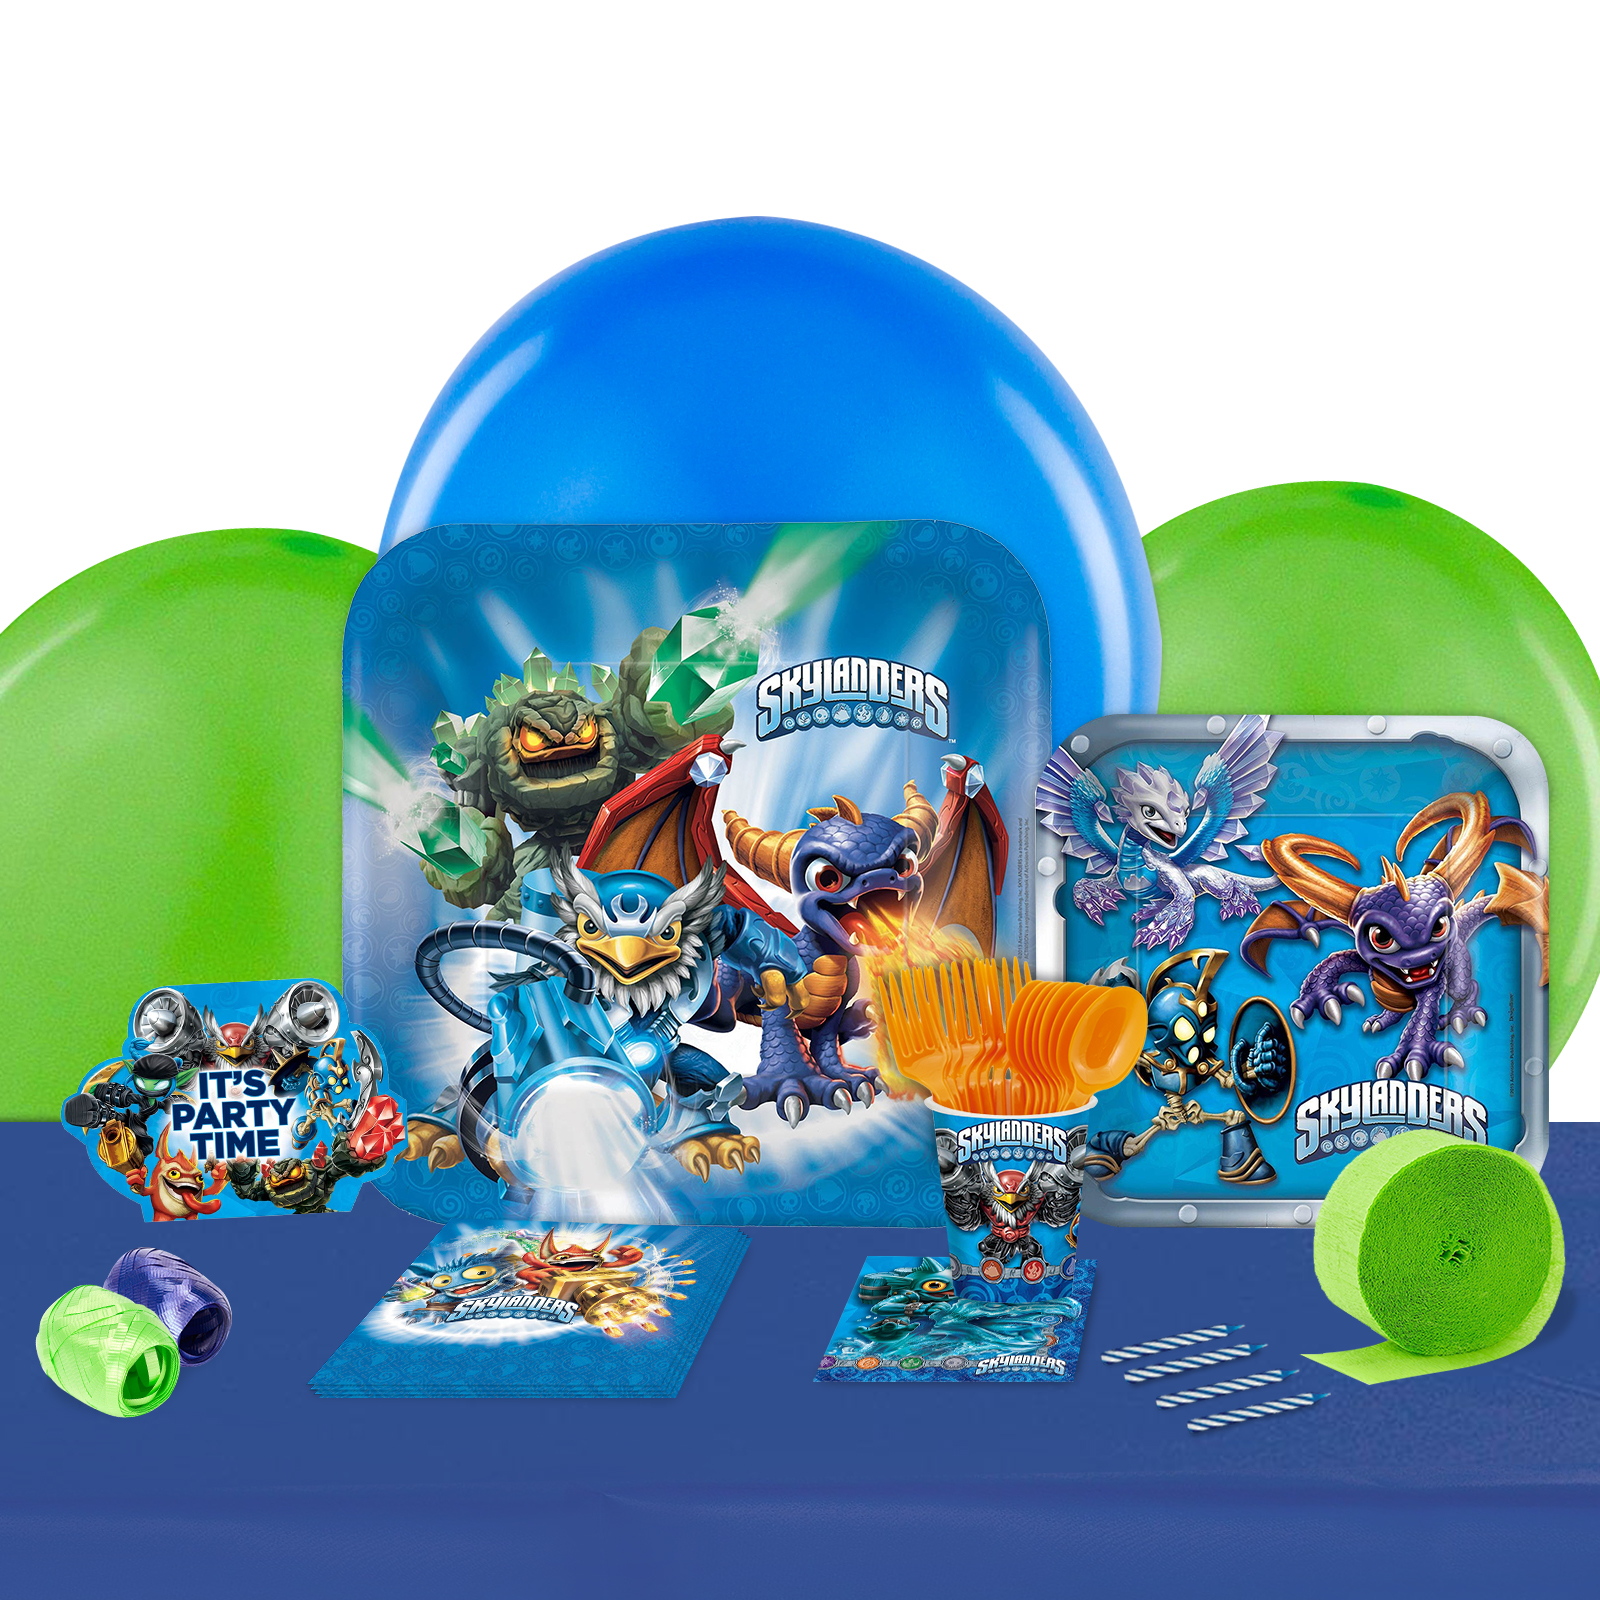 Skylanders Party in a Box For 8-Basic